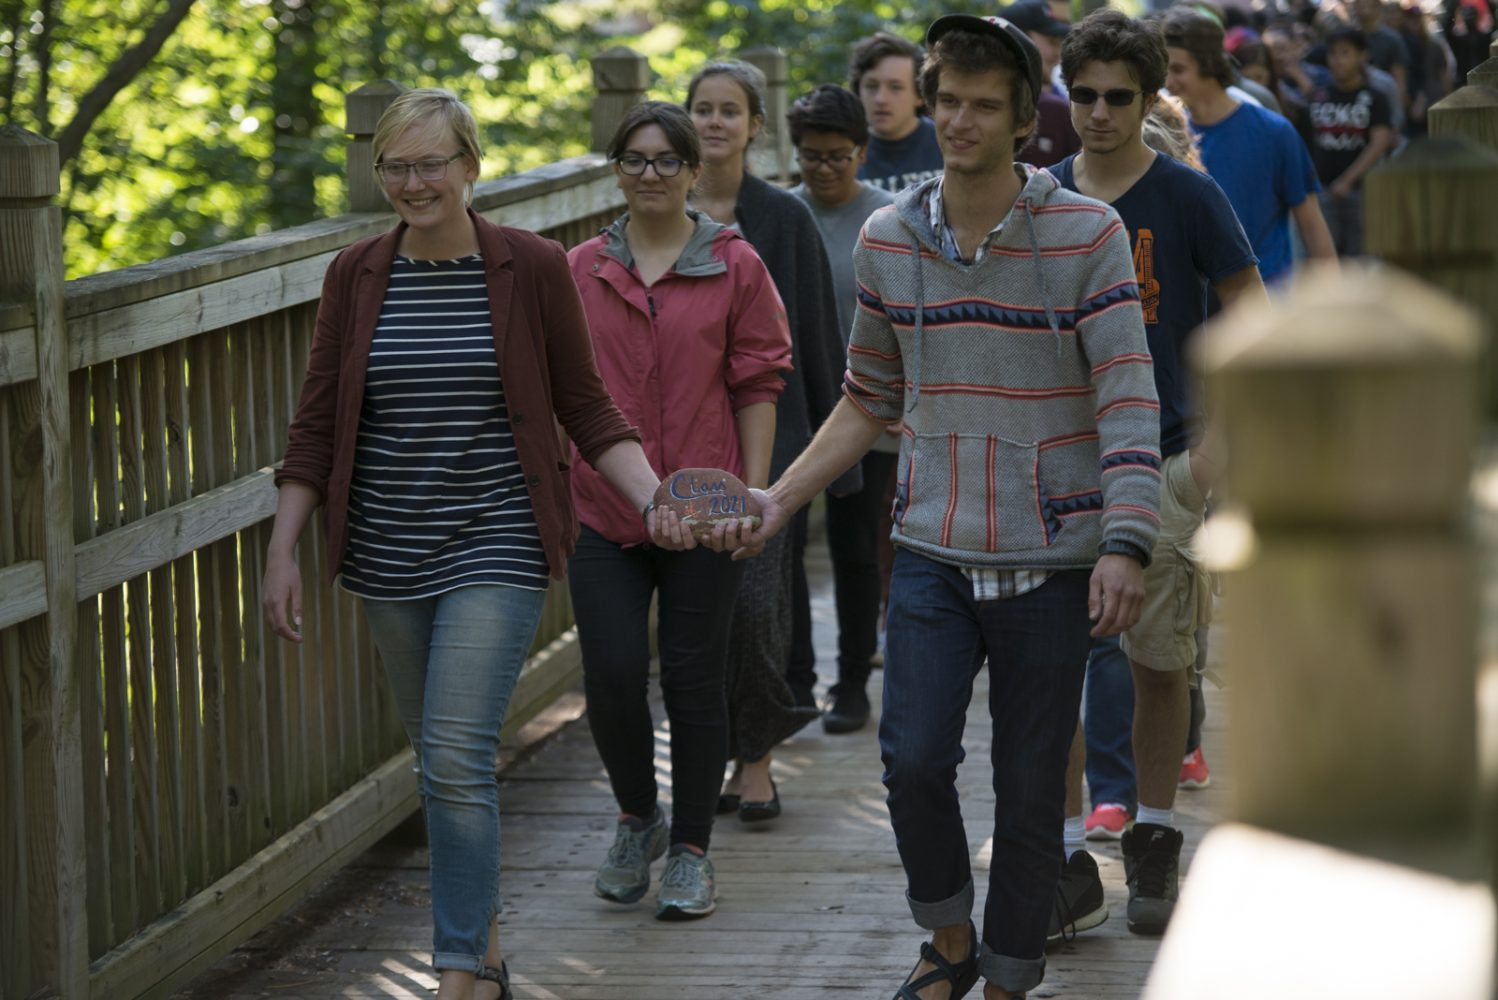 Northland College graduates carry the Class of 2021 rock across the bridge as part of convocation.